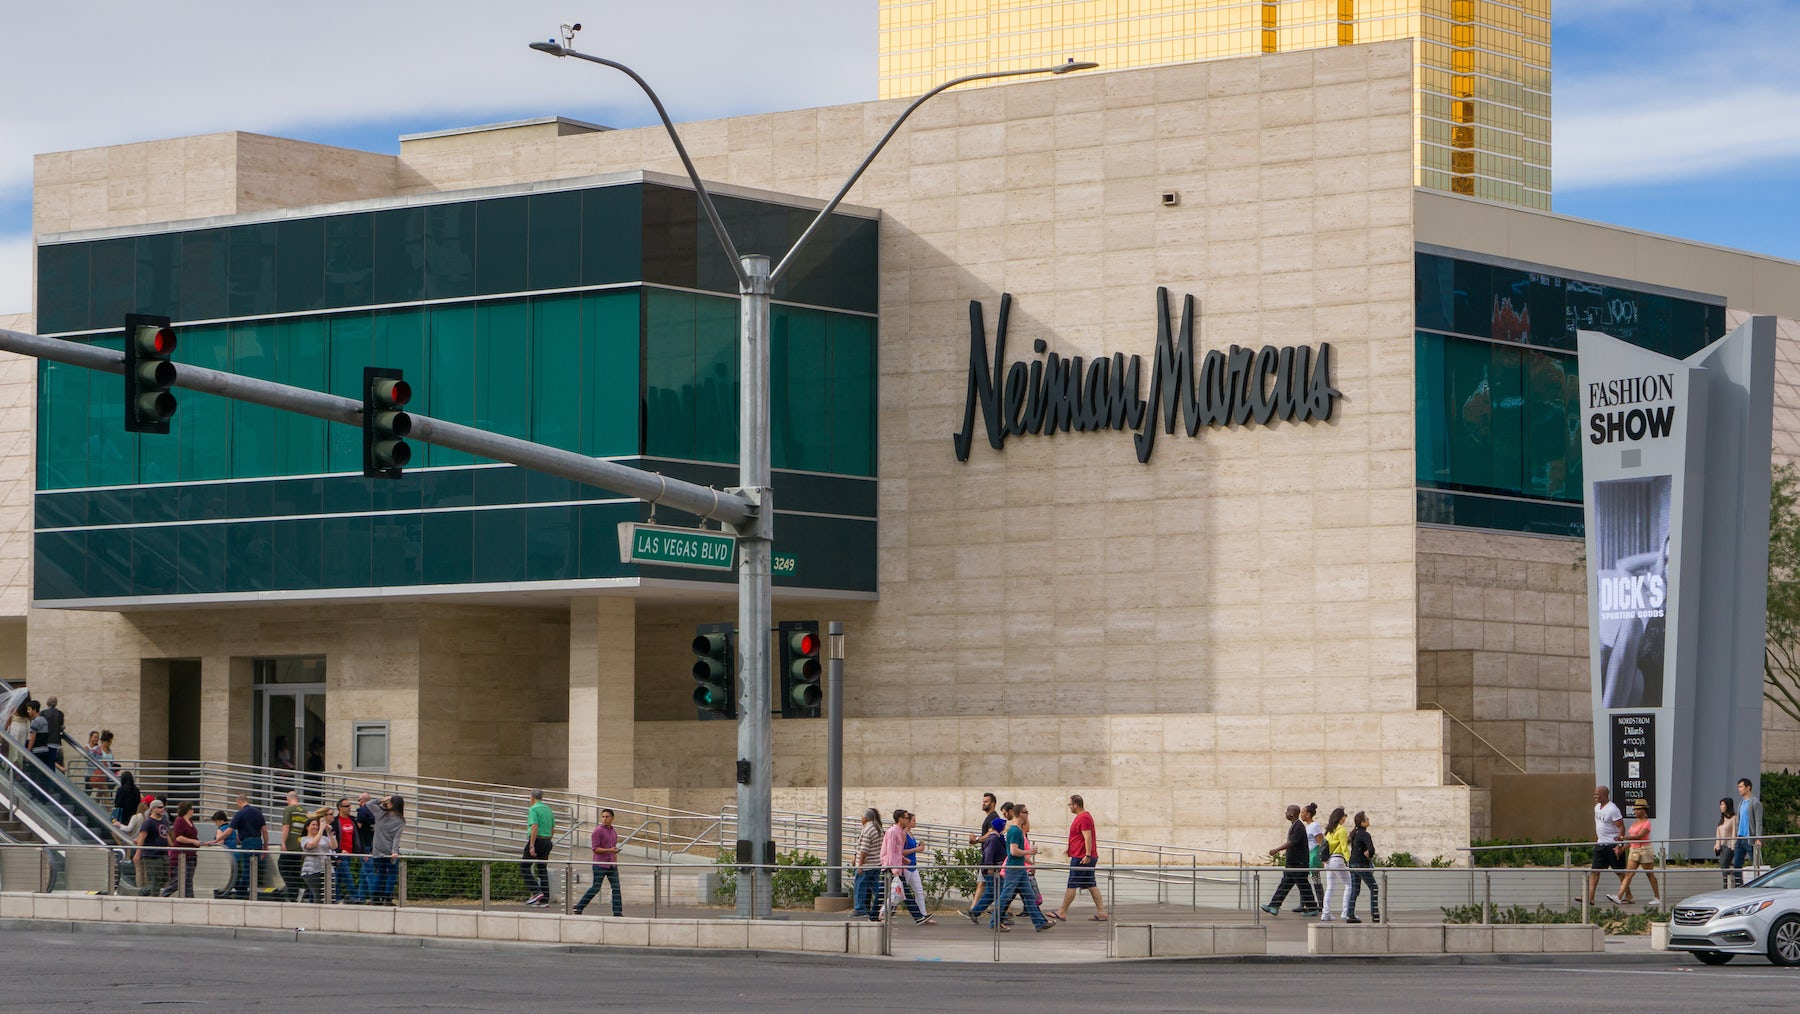 News Bites | Neiman Marcus Still Searching for a CFO, Amazon Fashion Names New President